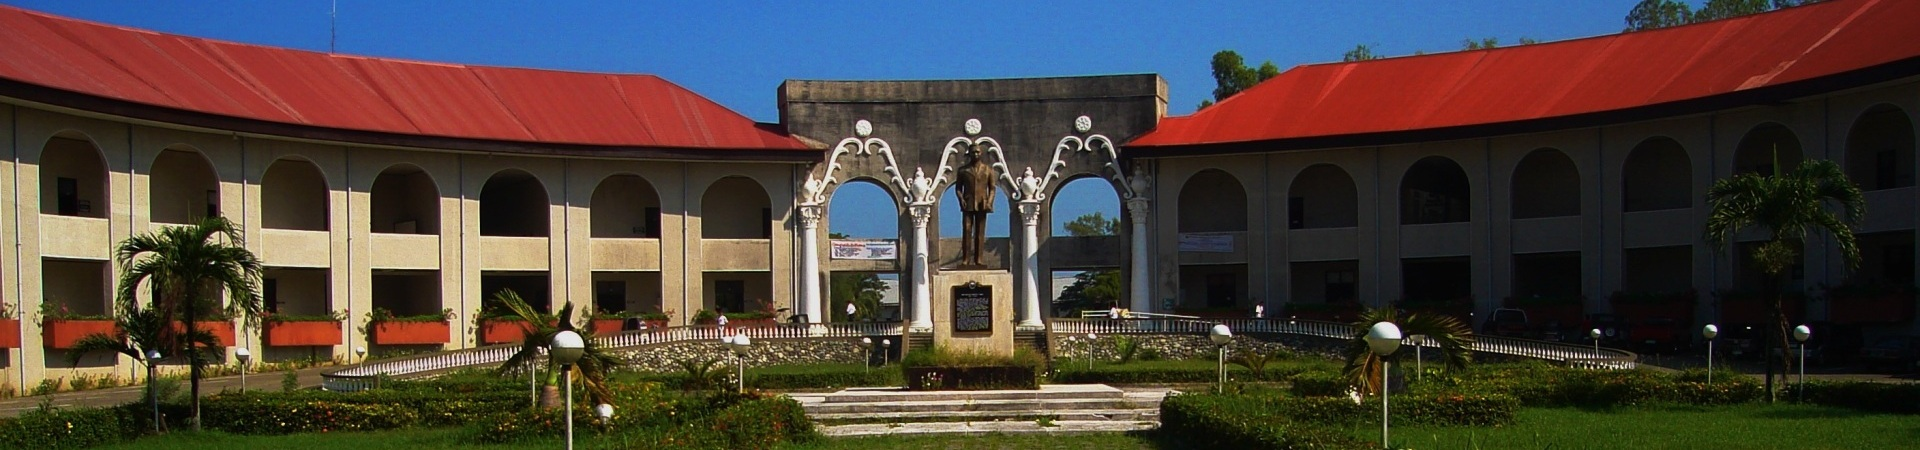 Ilocos Norte Science Community | Mariano Marcos State University